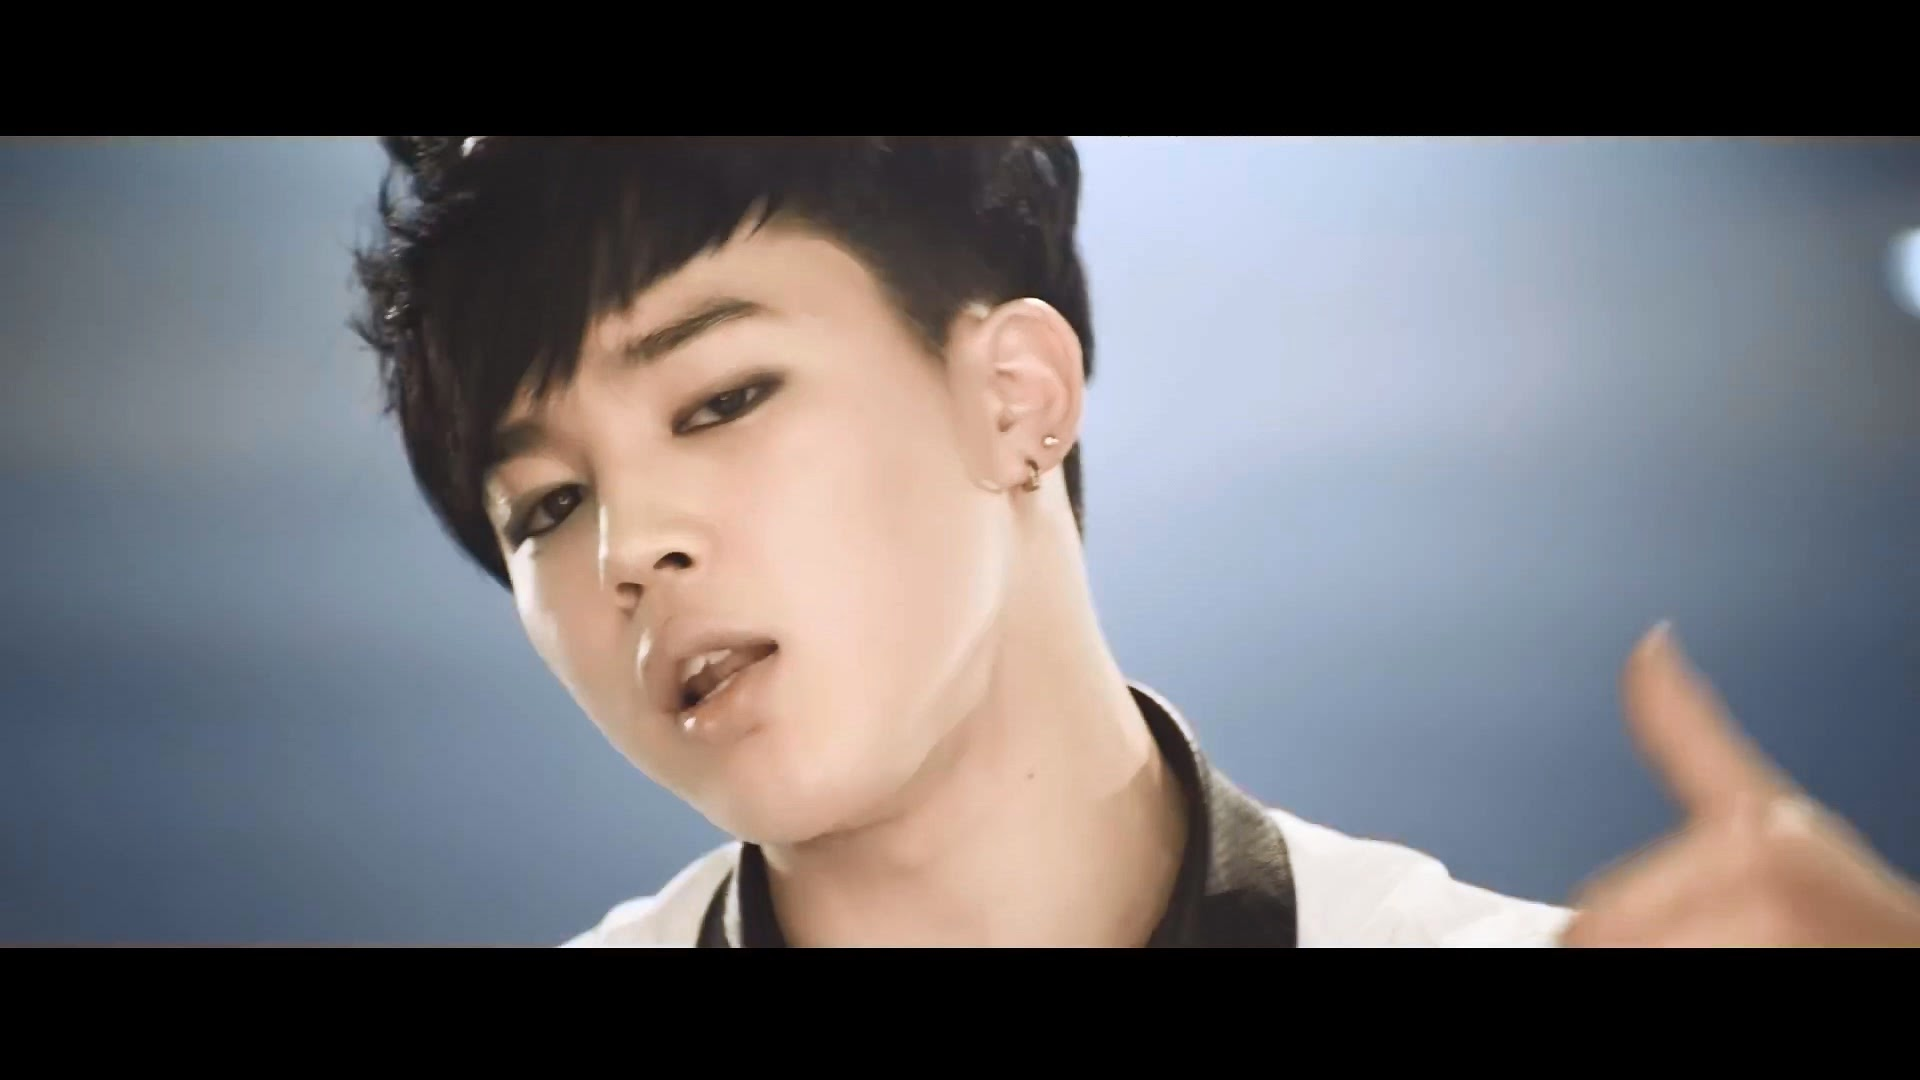 Bts Boy In Luv Who Is Who I Say Myeolchi K Pop In Greek